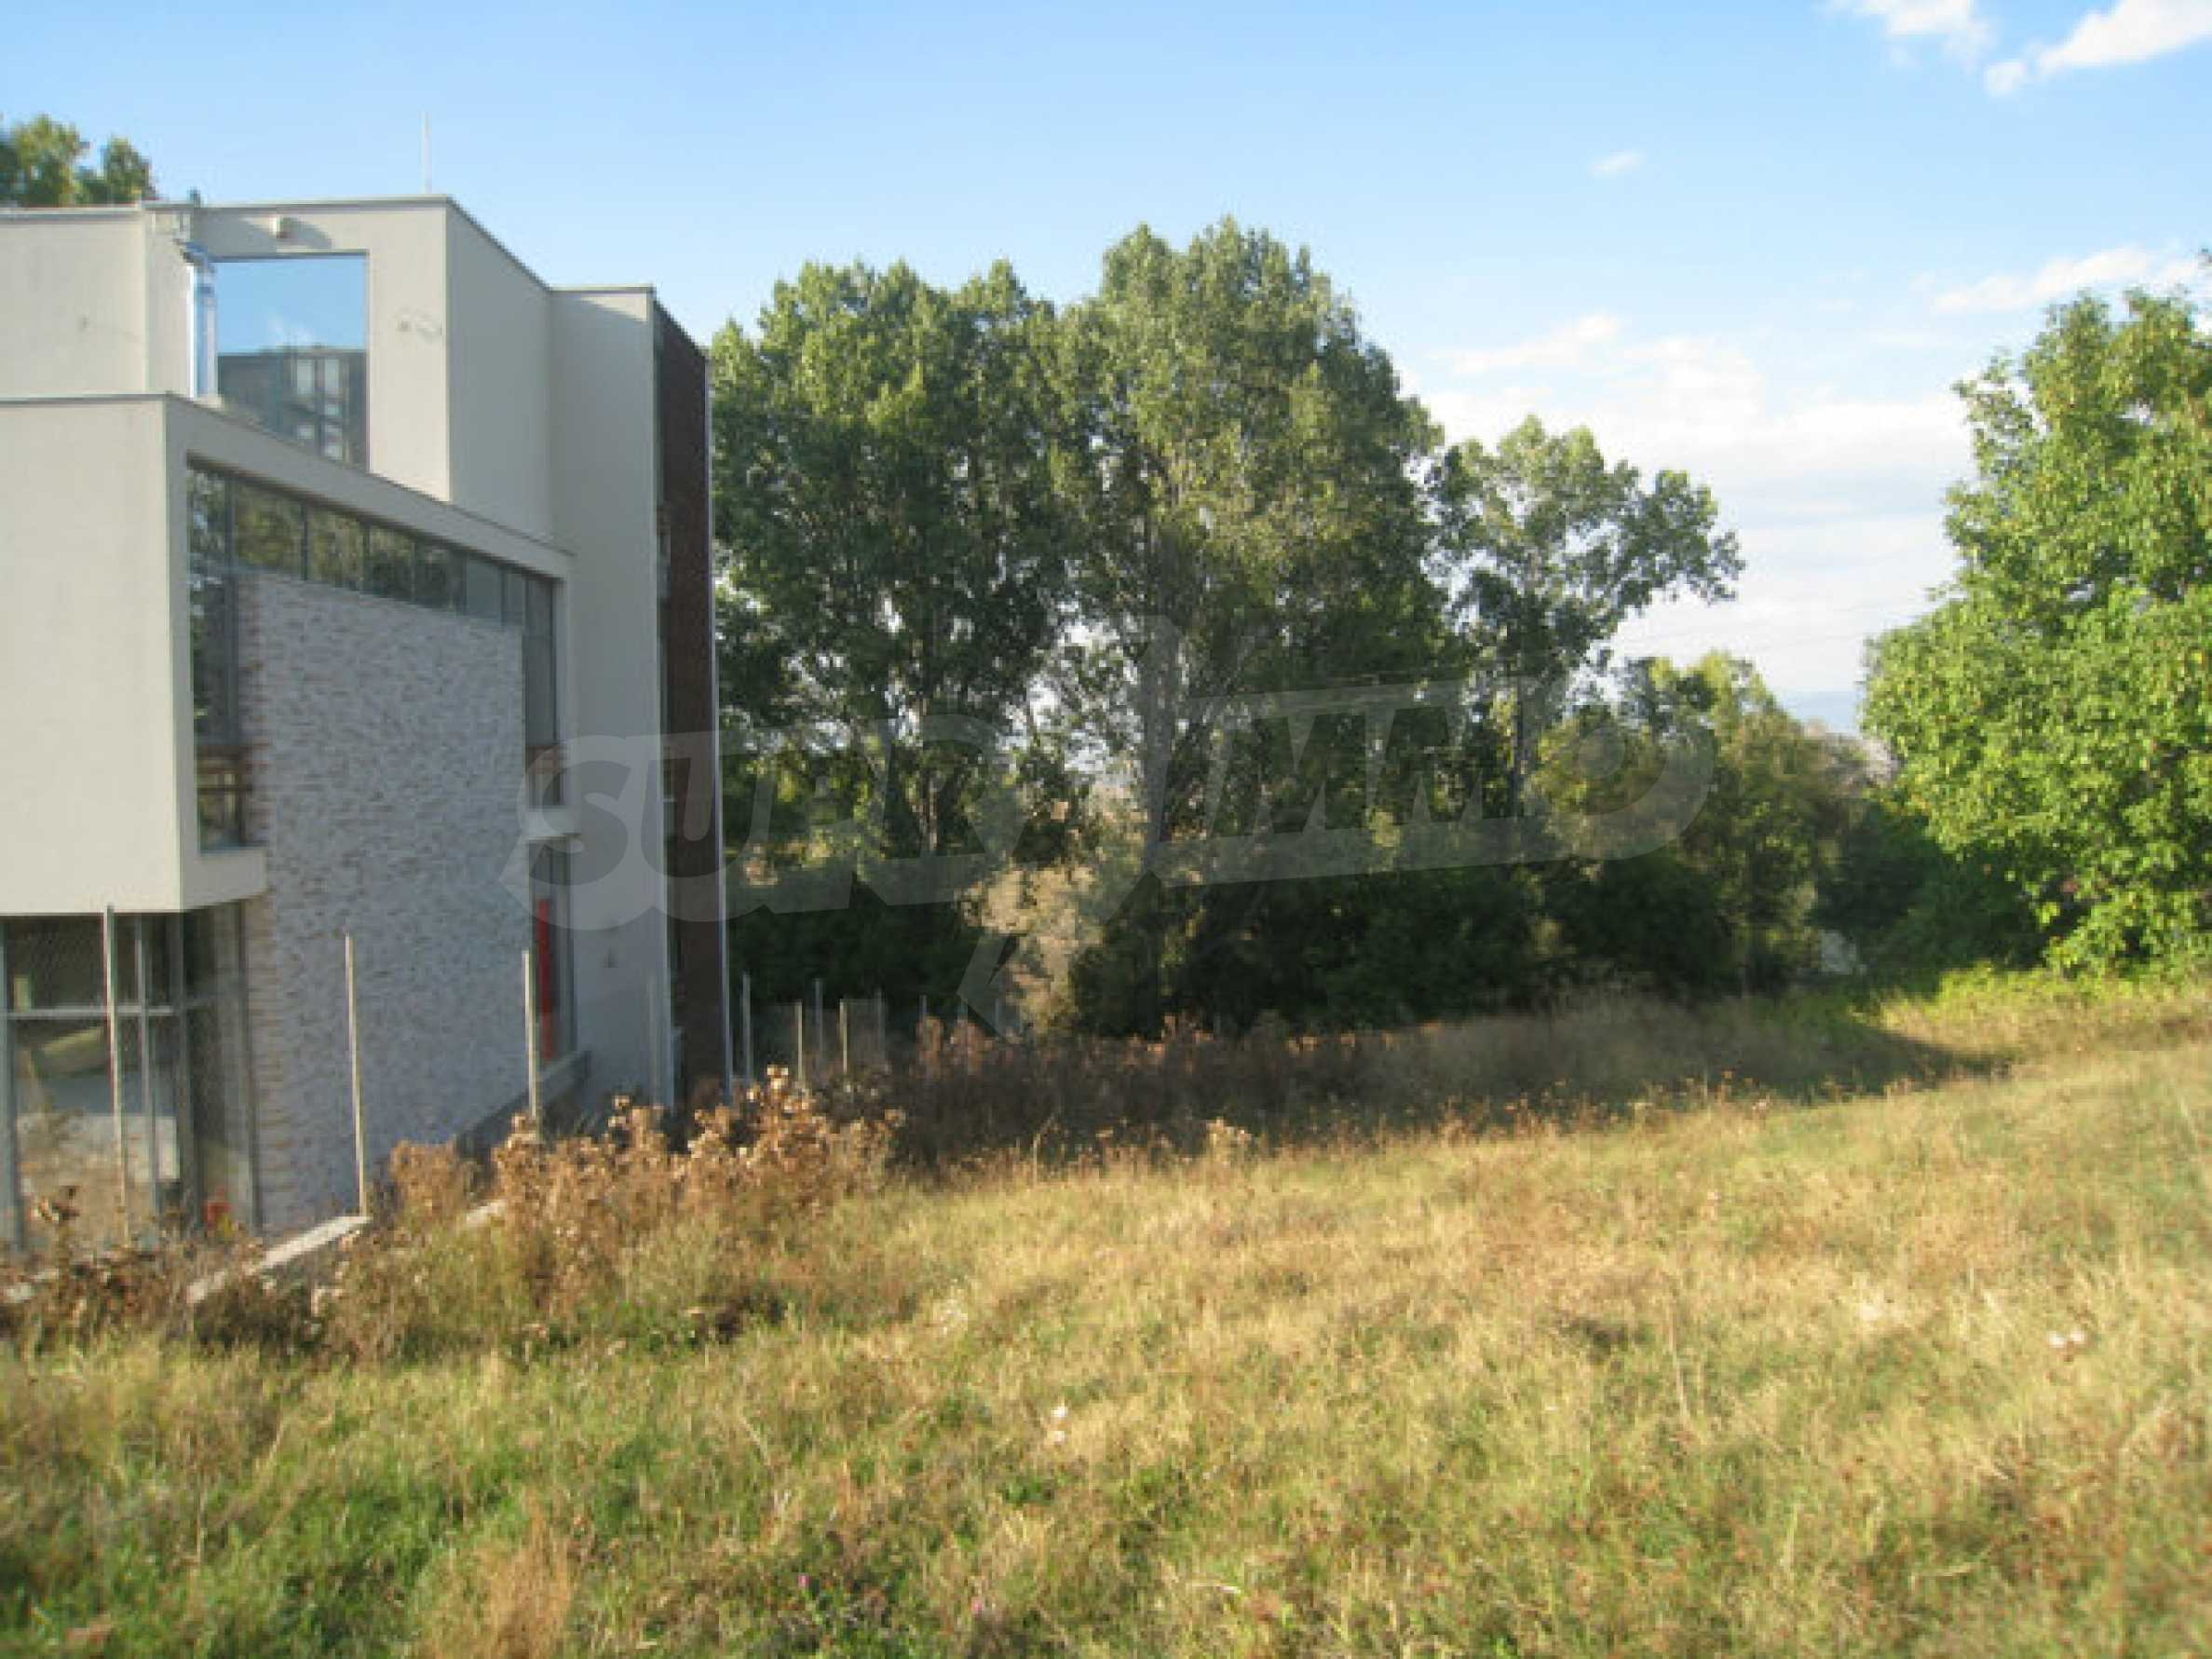 Regulated plot of land for rural private house or villa near Sofia 9